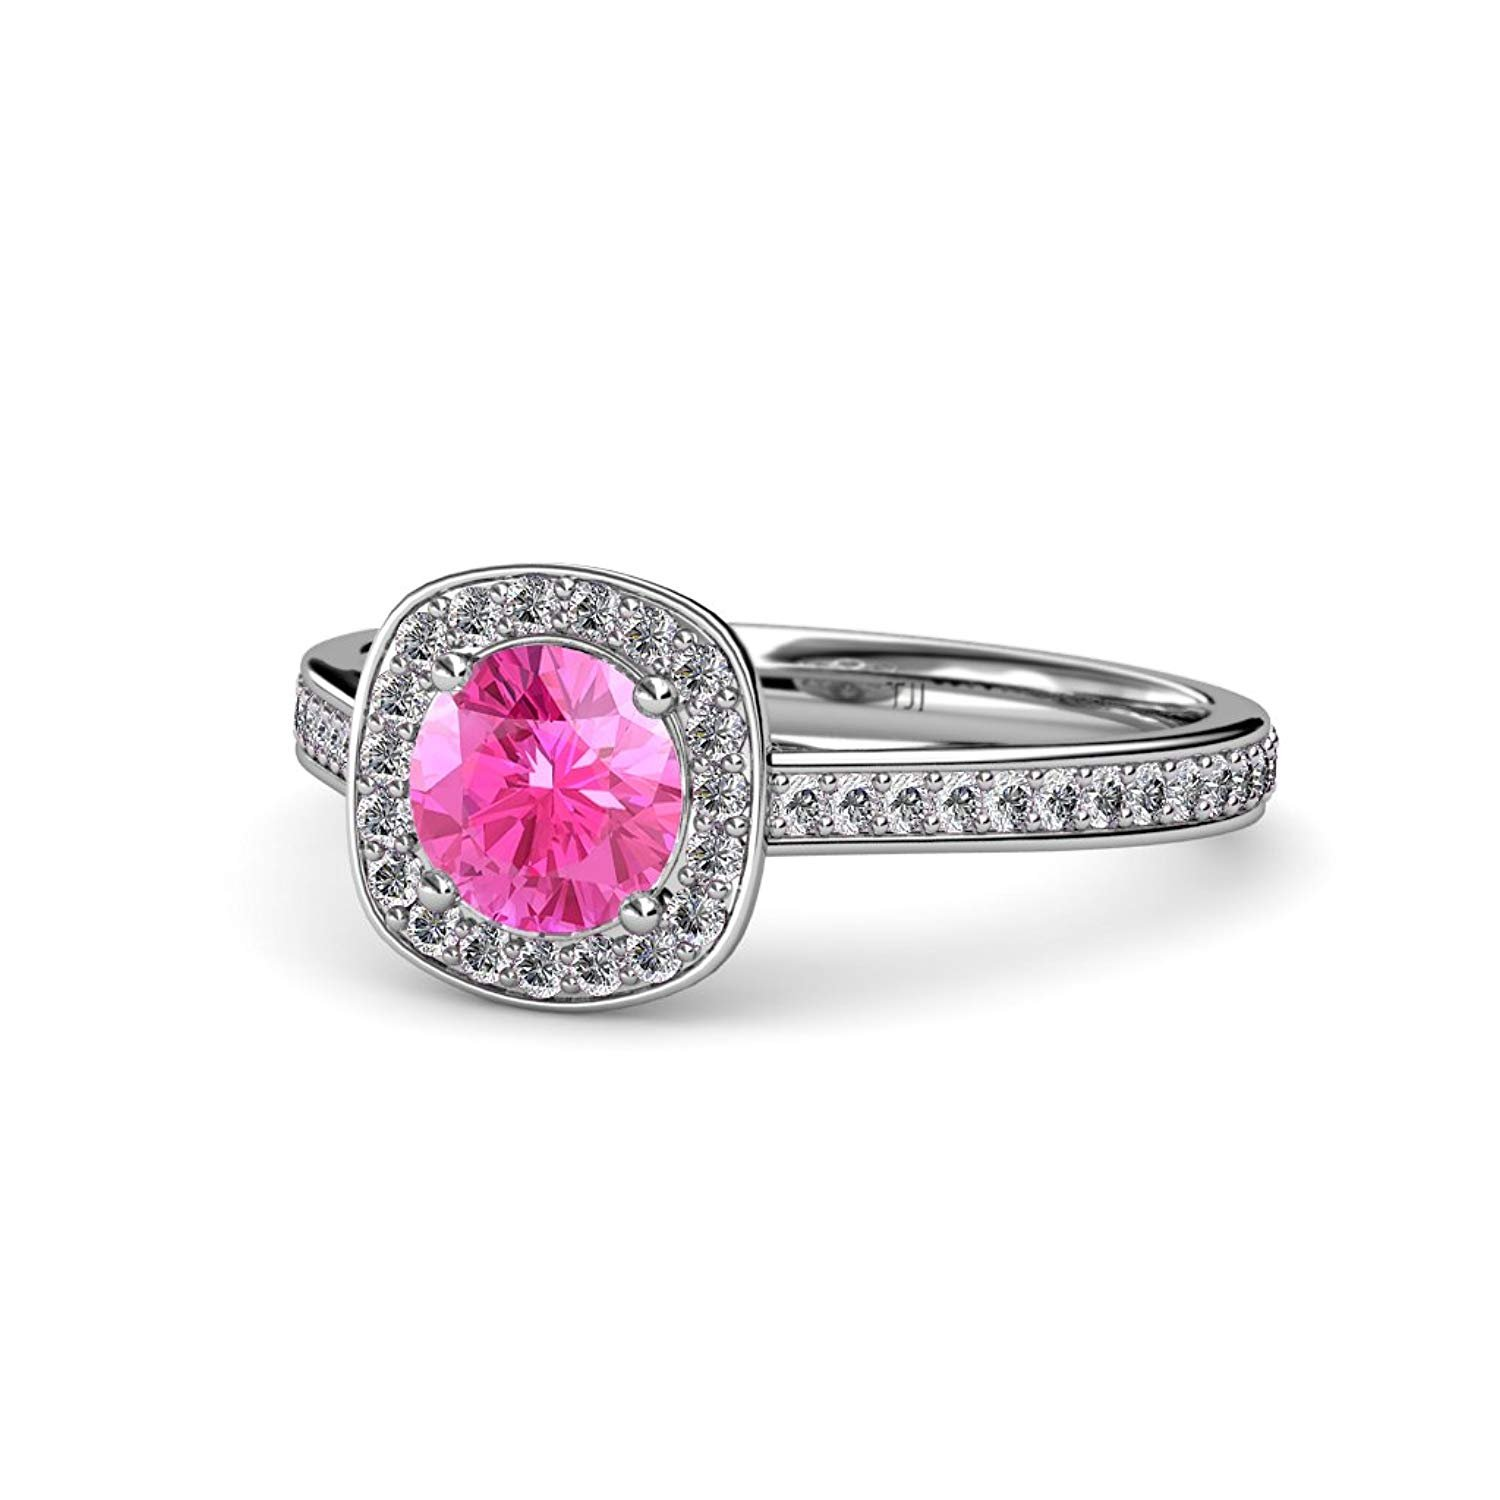 Pink Sapphire and Diamond (SI2-I1, G-H) Halo Engagement Ring 1.15 ct tw in 14K White Gold.size 5.0 by TriJewels